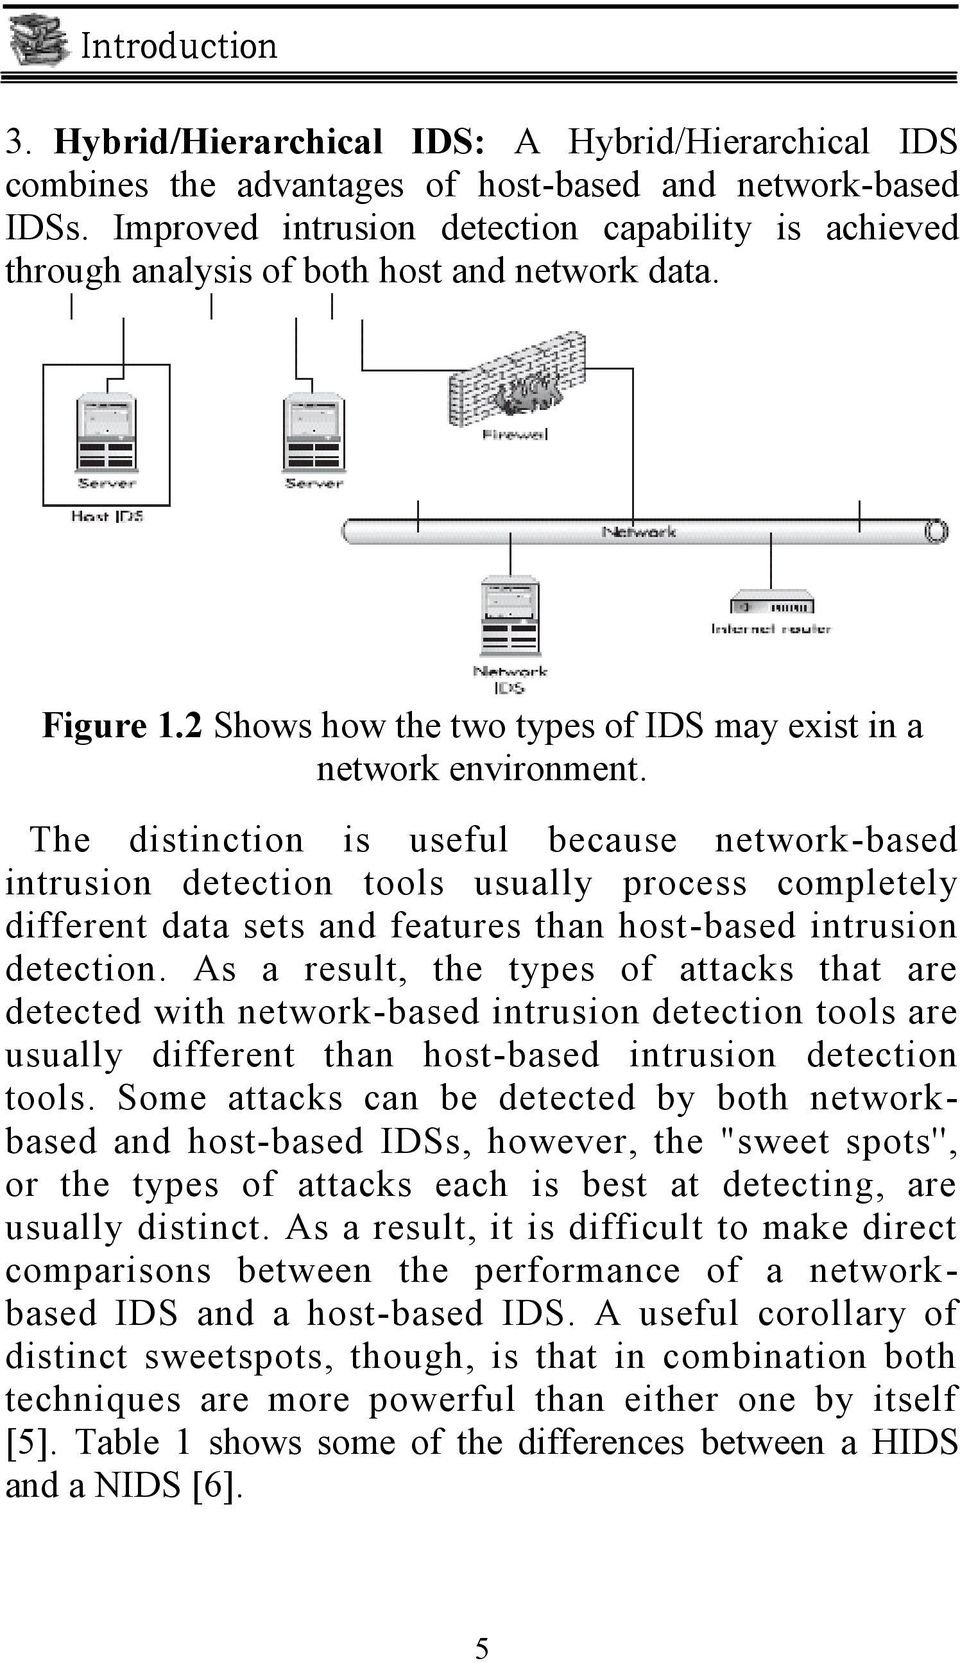 The distinction is useful because network-based intrusion detection tools usually process completely different data sets and features than host-based intrusion detection.